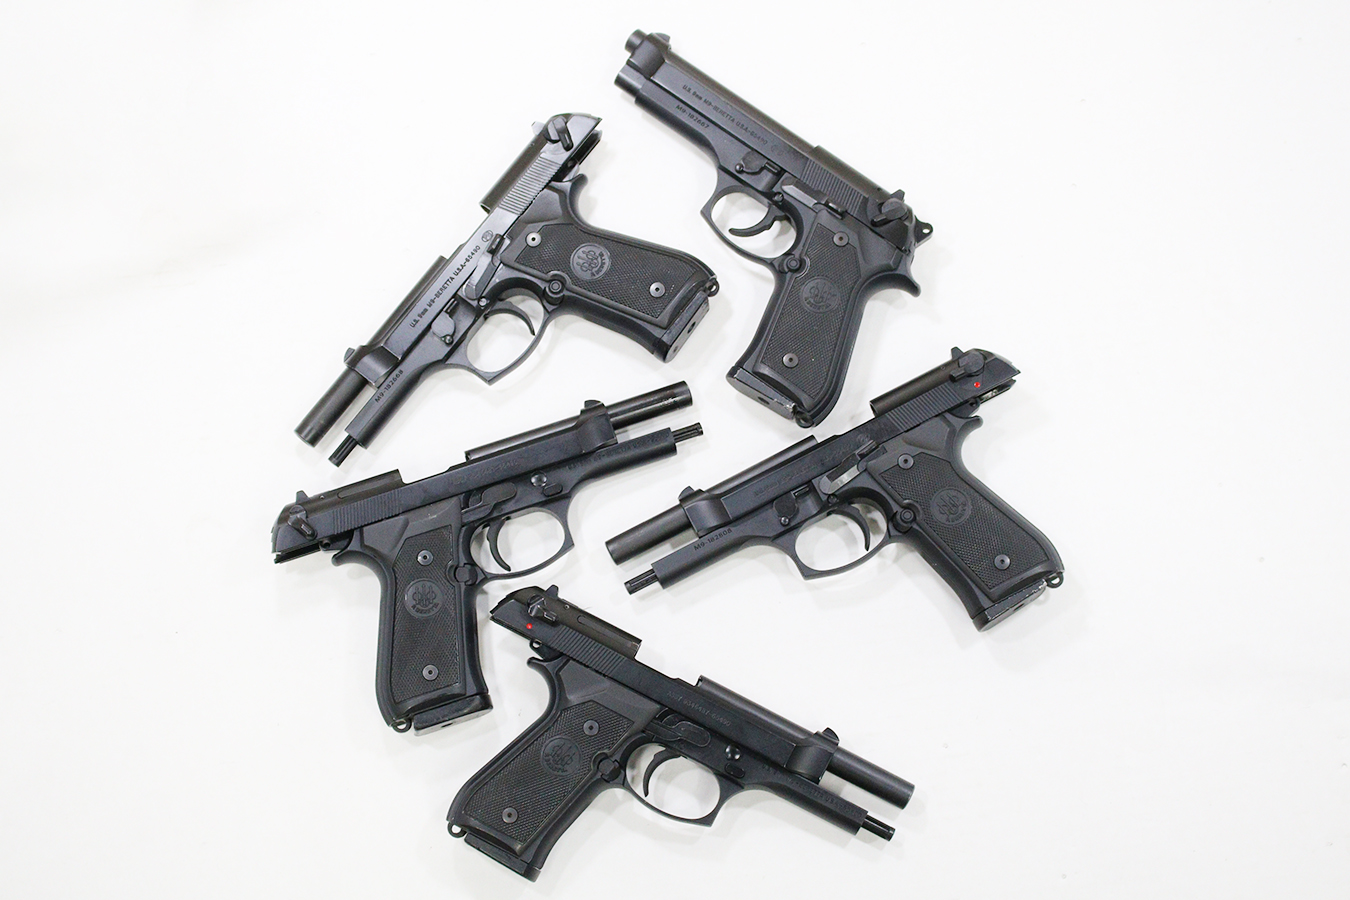 M9 92 Series 9mm Police Trade-in Pistols (Very Good Condition)